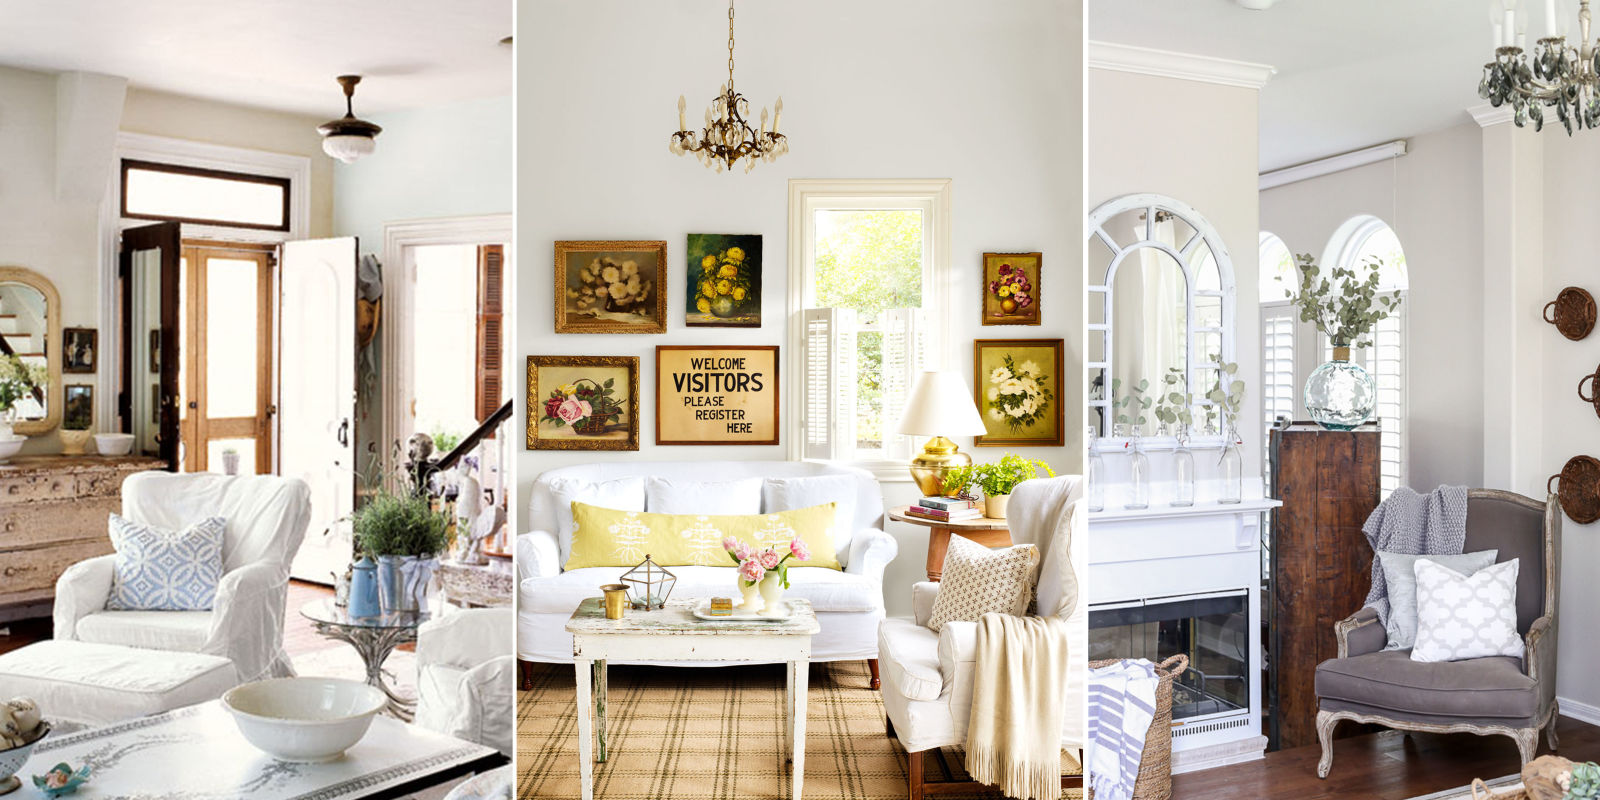 10 Shabby-Chic Living Room Ideas